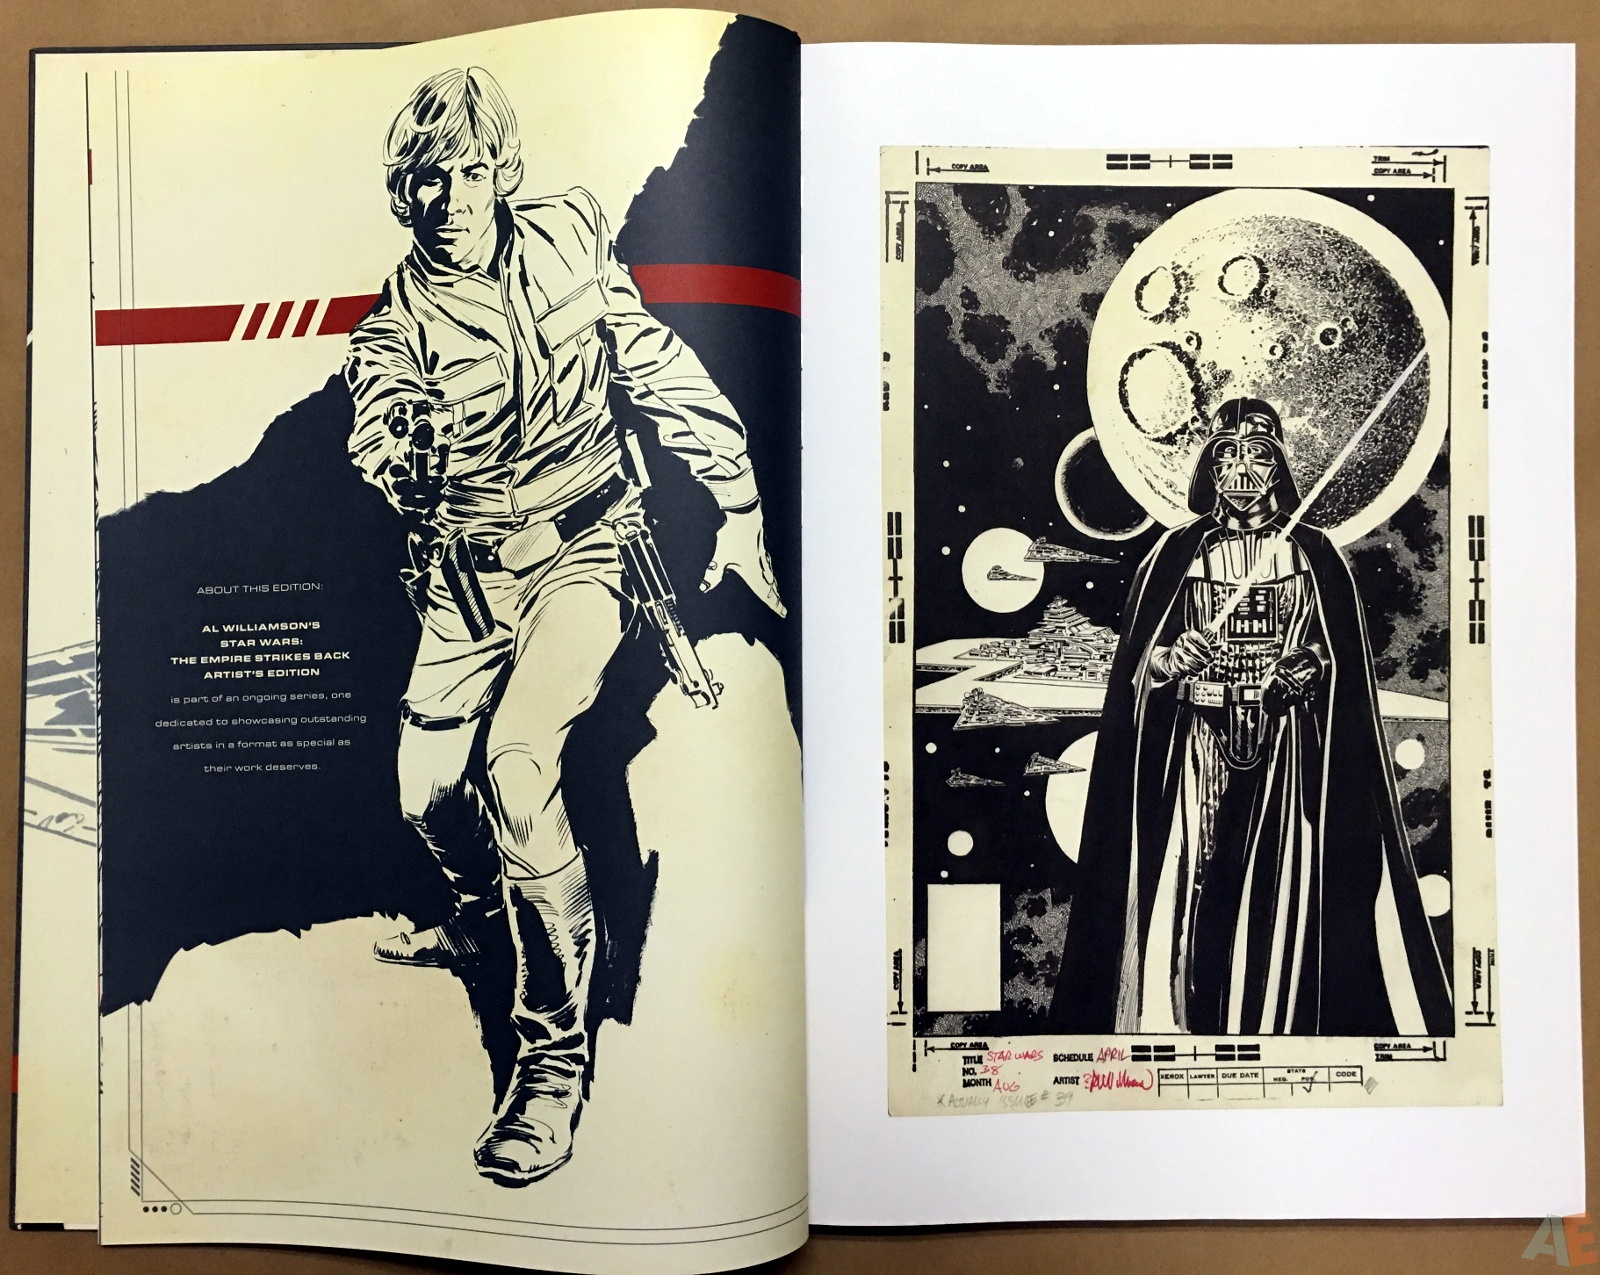 Al Williamson's Star Wars: The Empire Strikes Back Artist's Edition 8